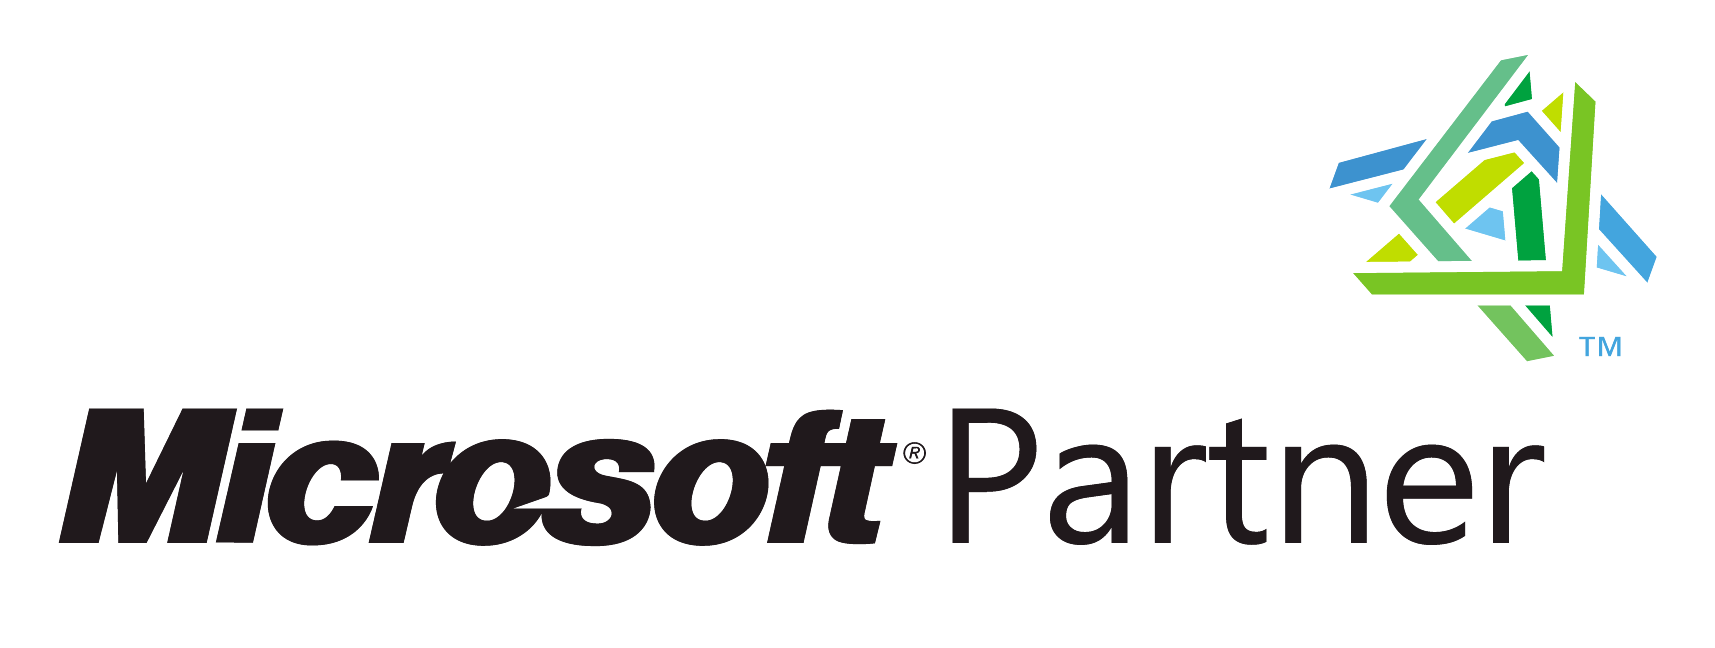 Microsoft network solutions company